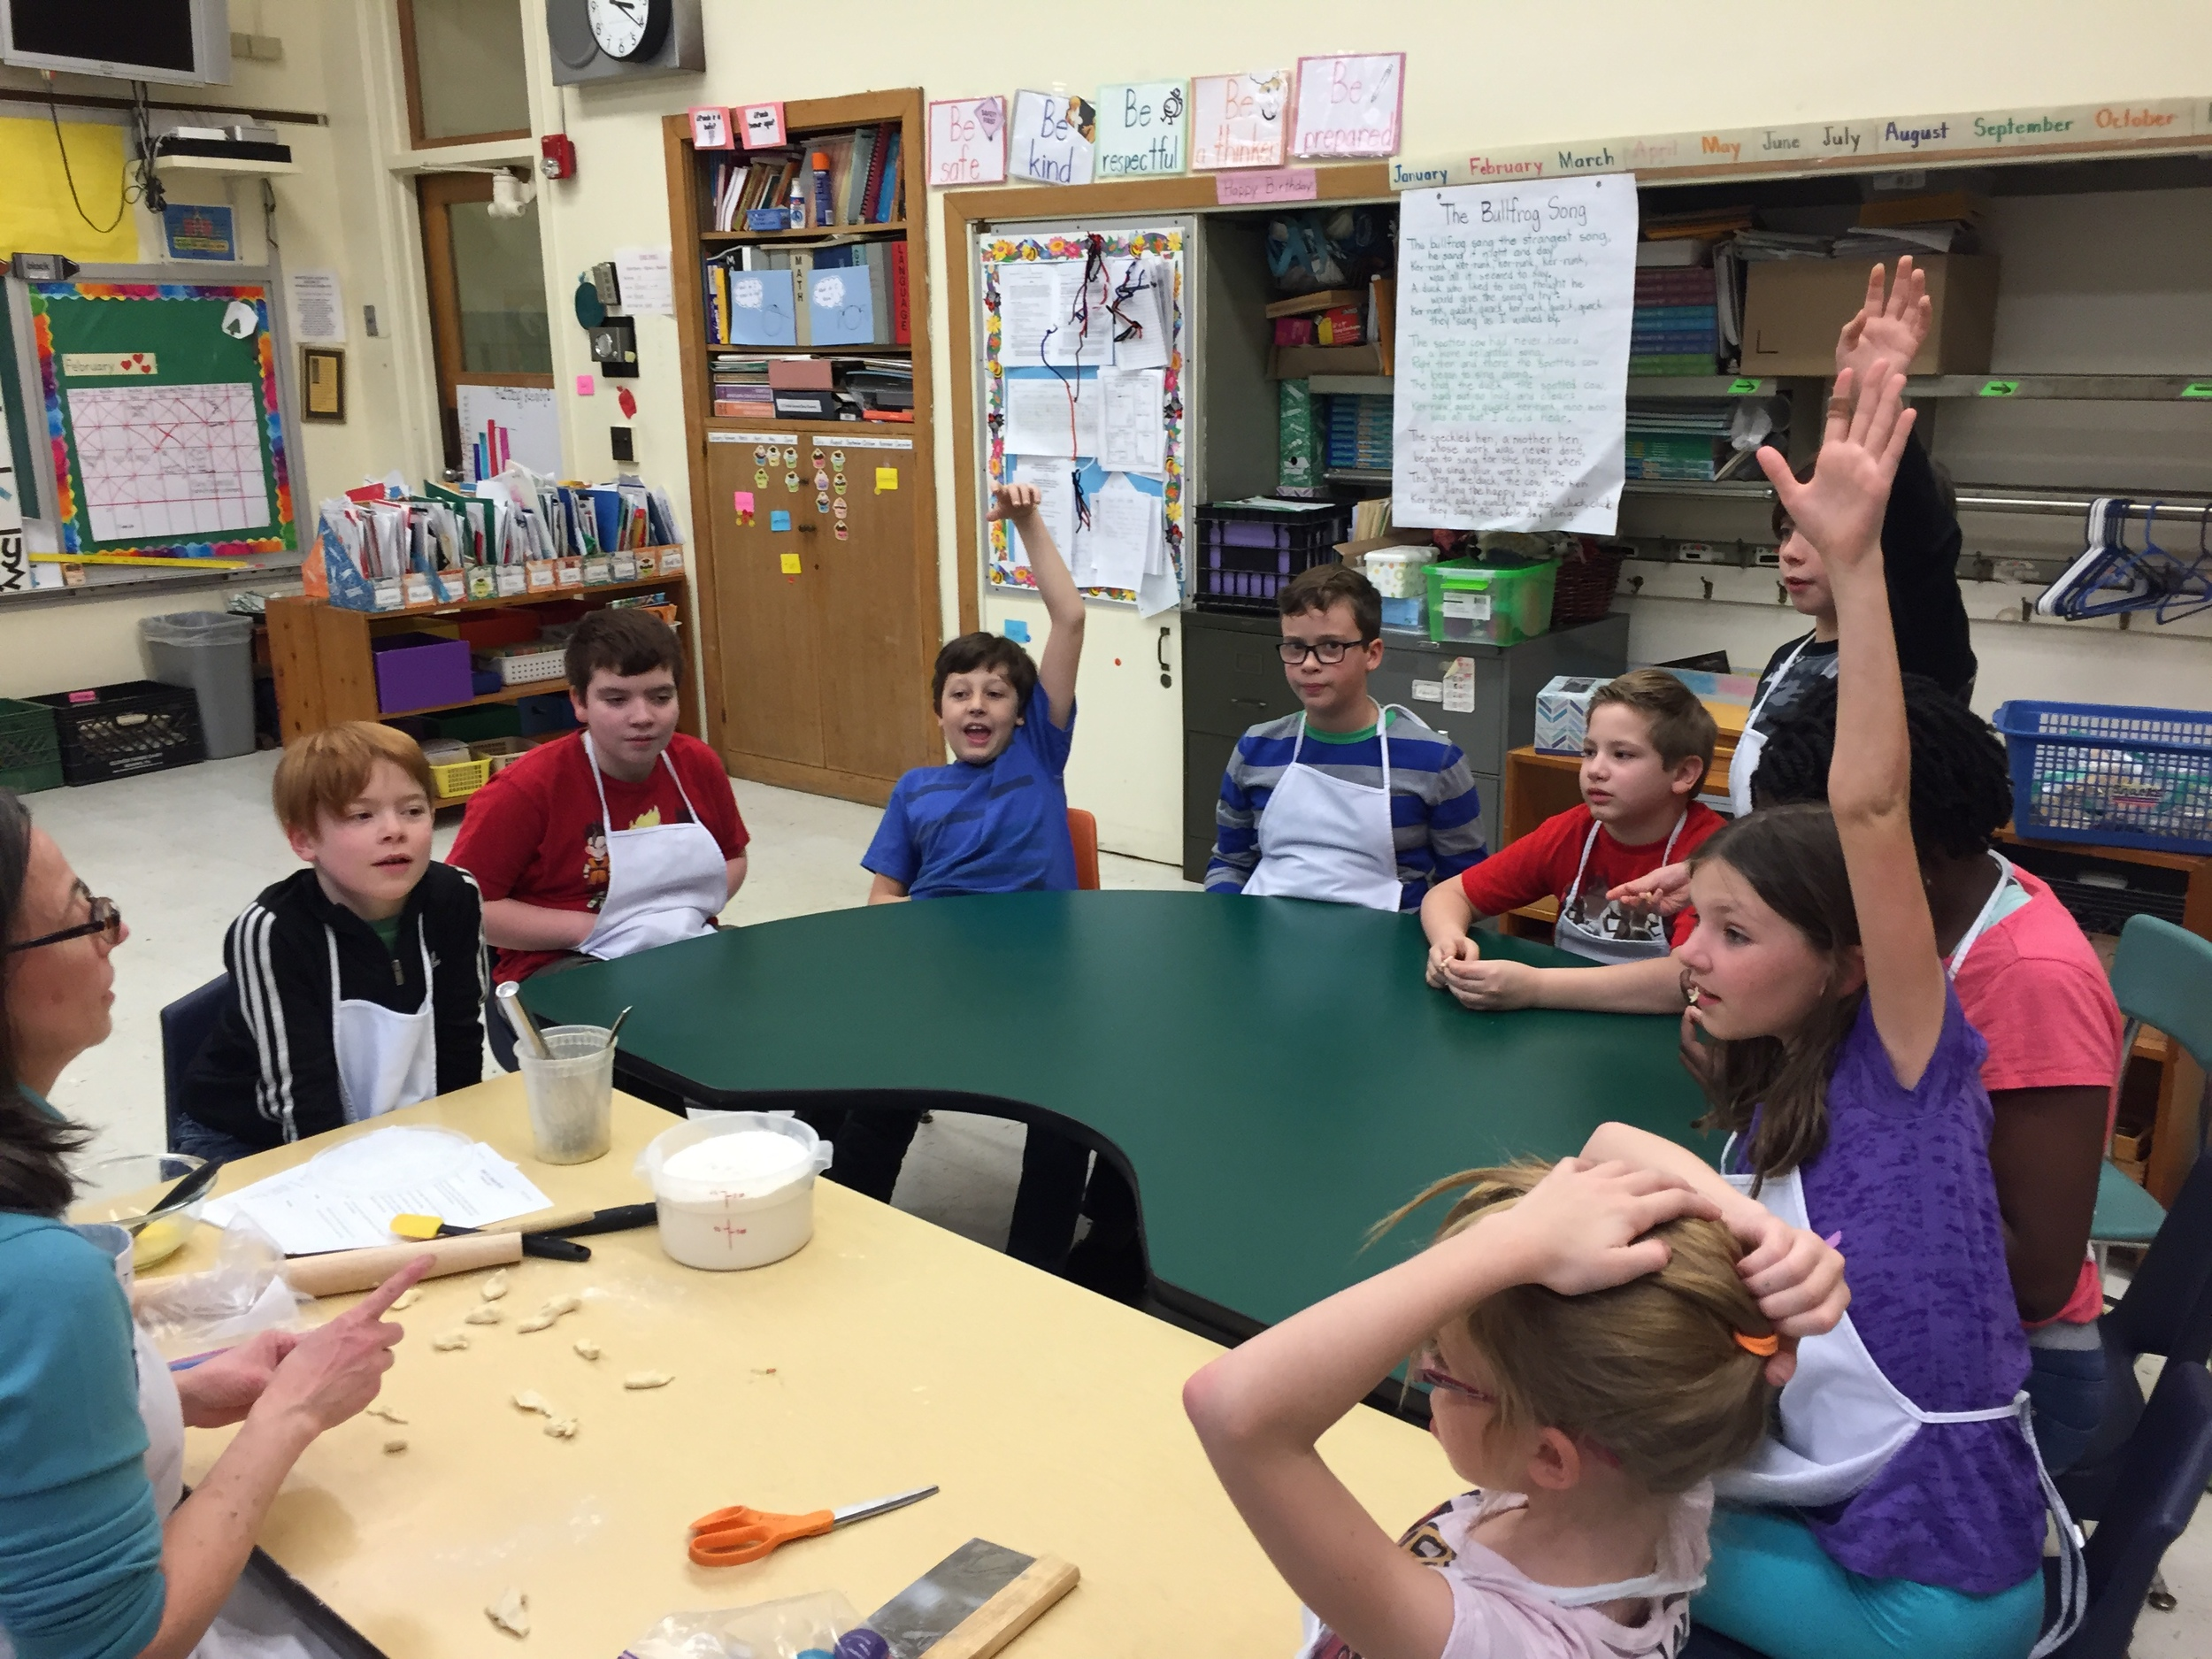 A Lively Round of Pie Trivia